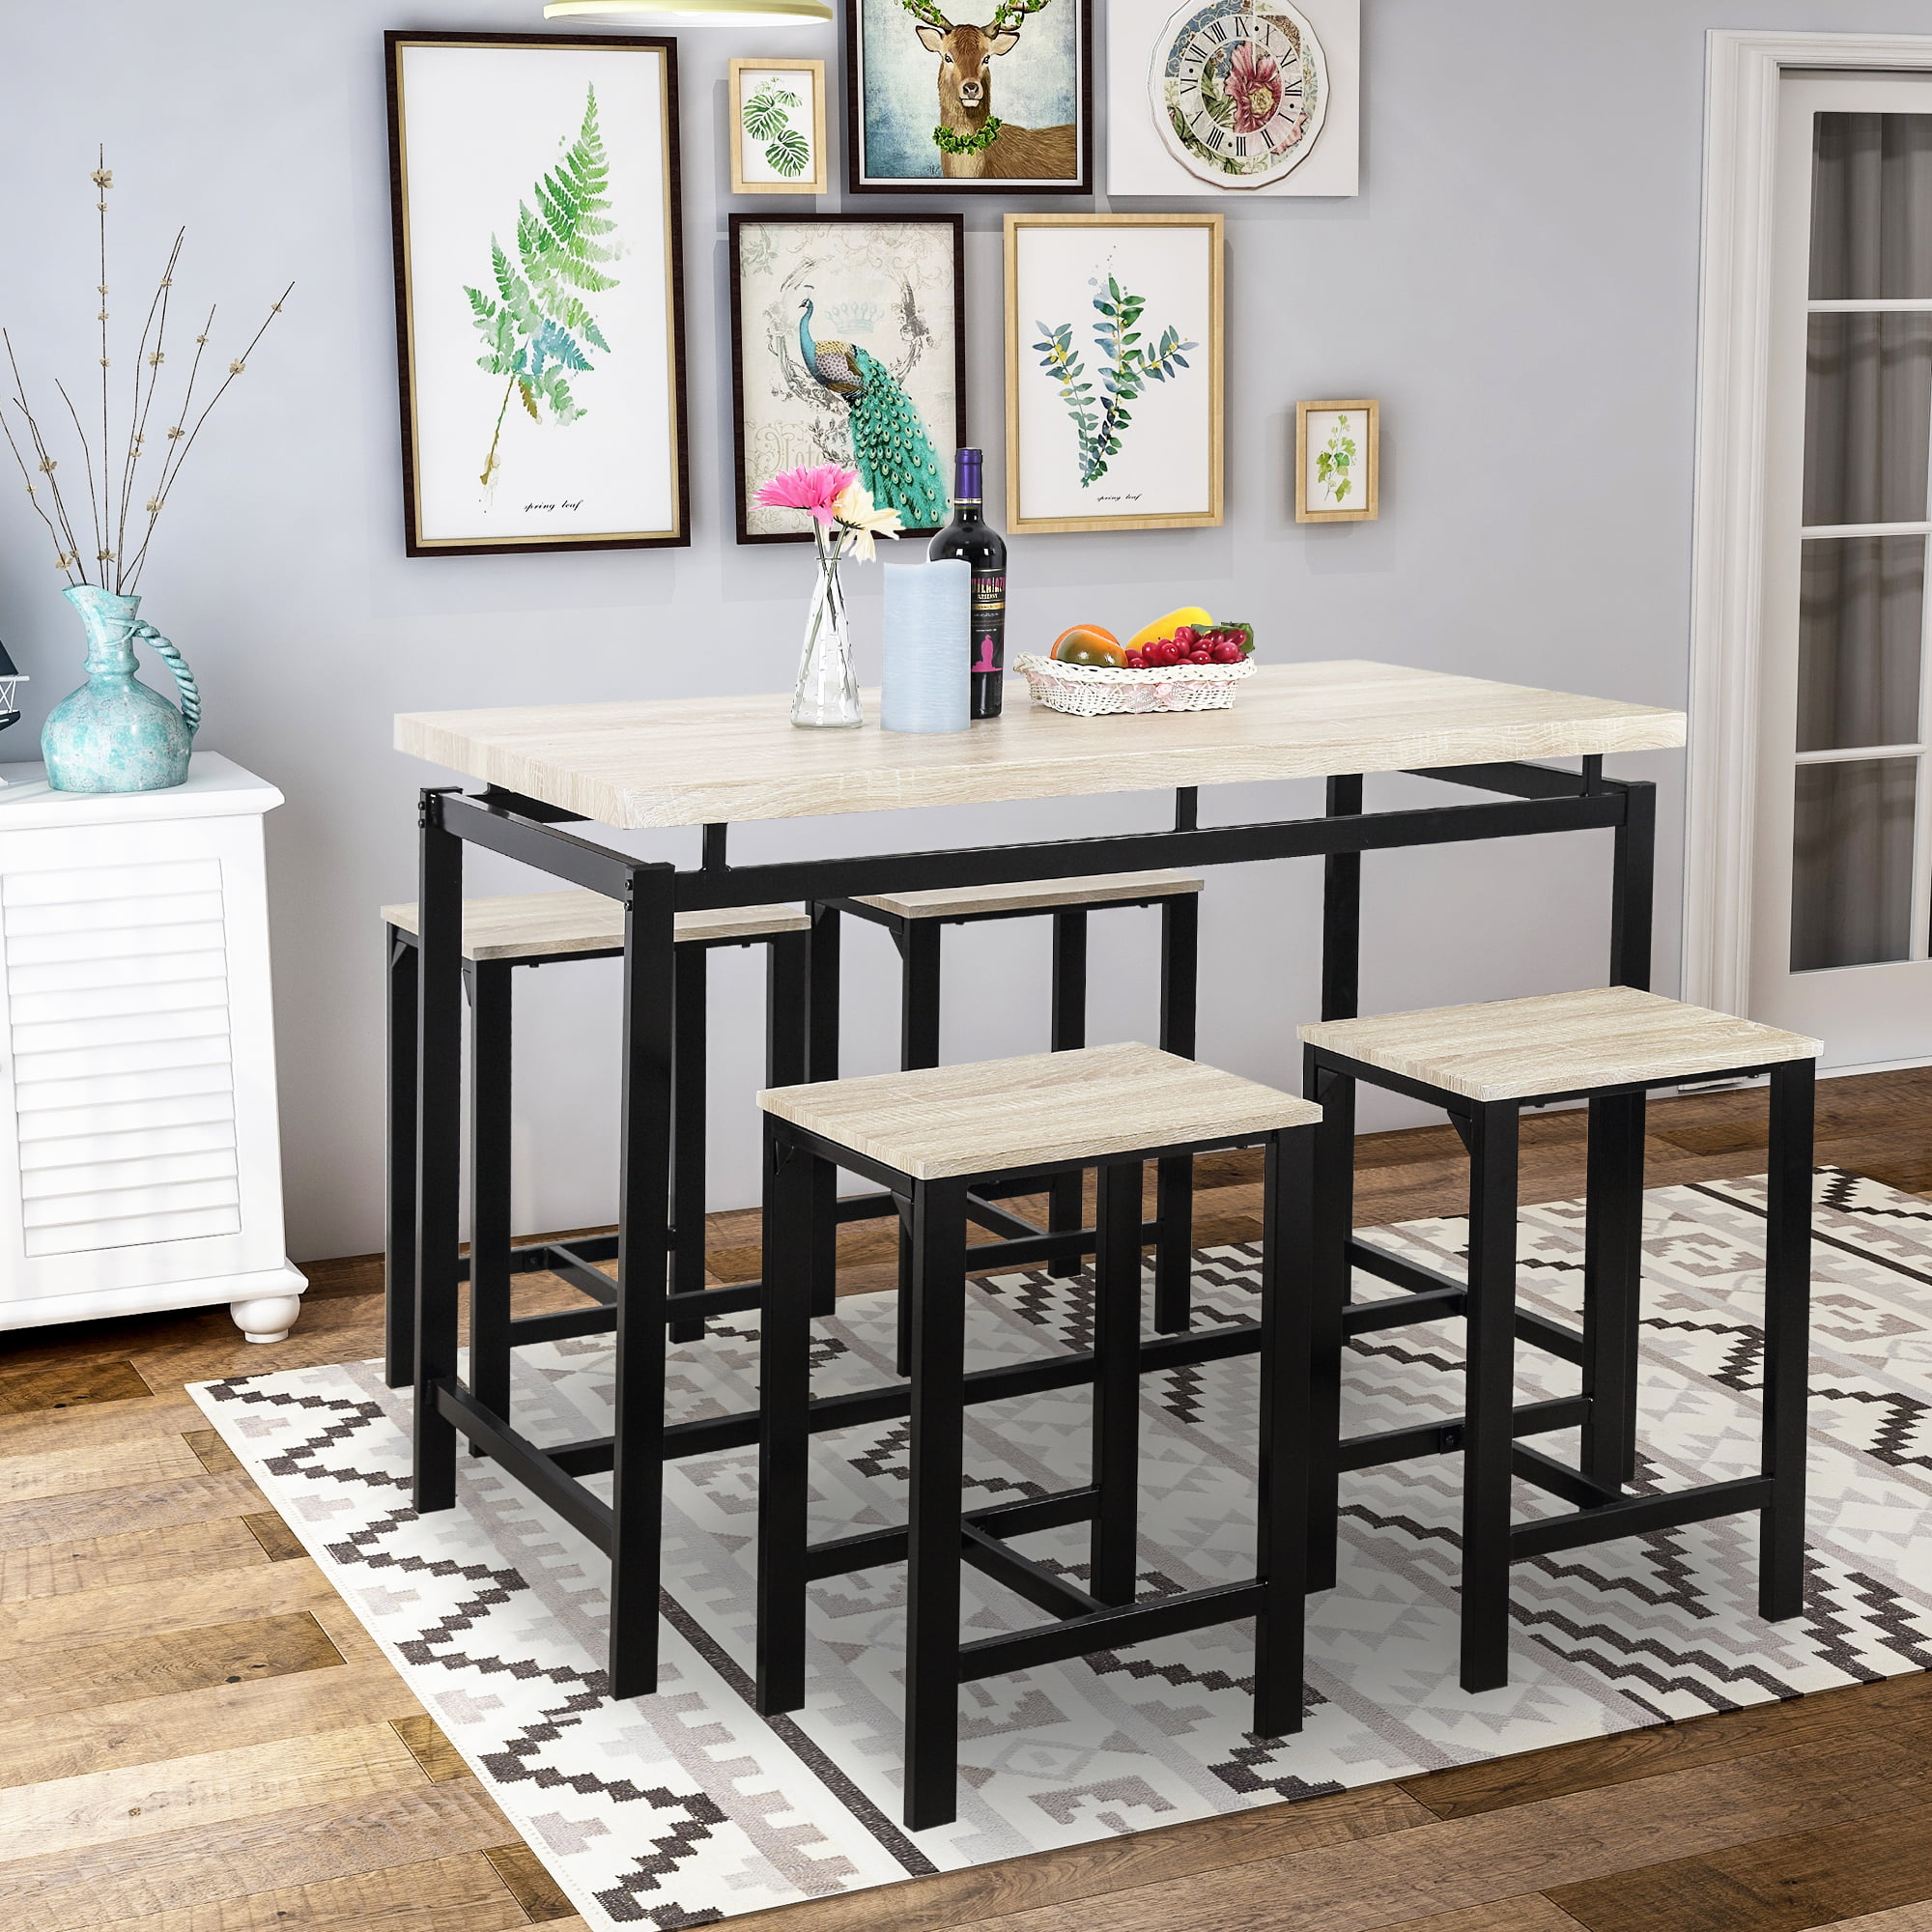 5Pcs Dining Table Set Modern Style Wooden Kitchen Table ...